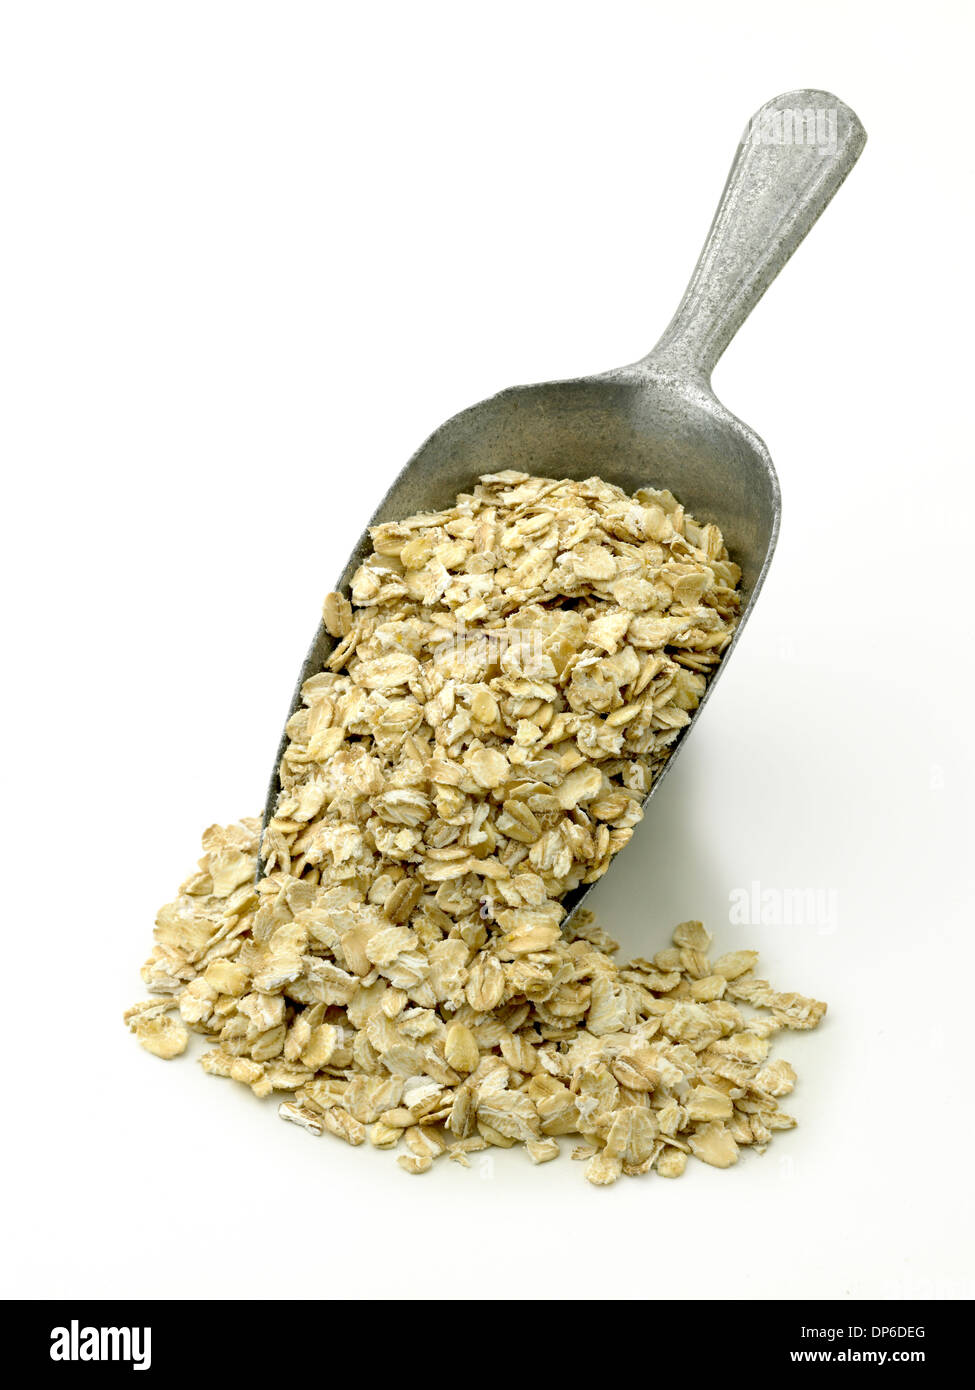 jumbo rolled oats in a scoop - Stock Image